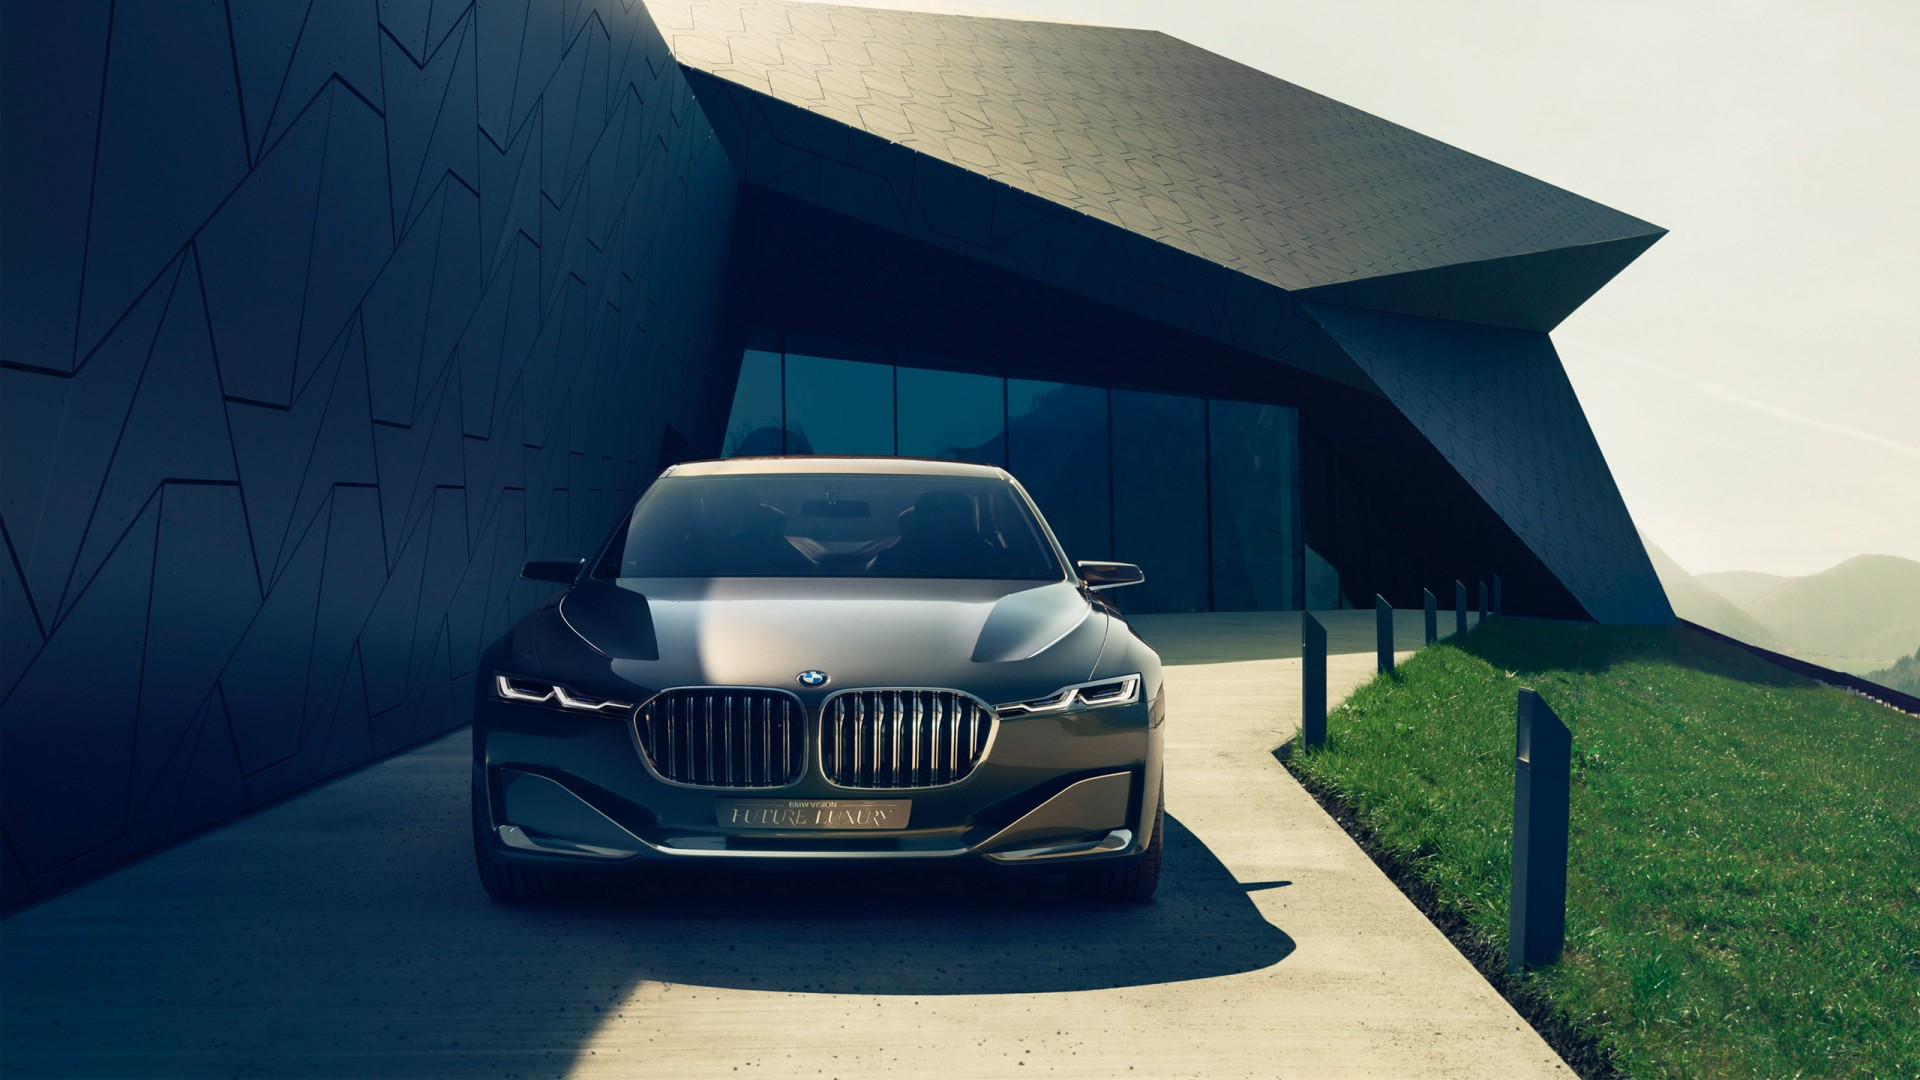 I Phone X Inside 3d Wallpaper Bmw Vision Future Luxury Car Wallpapers Hd Wallpapers